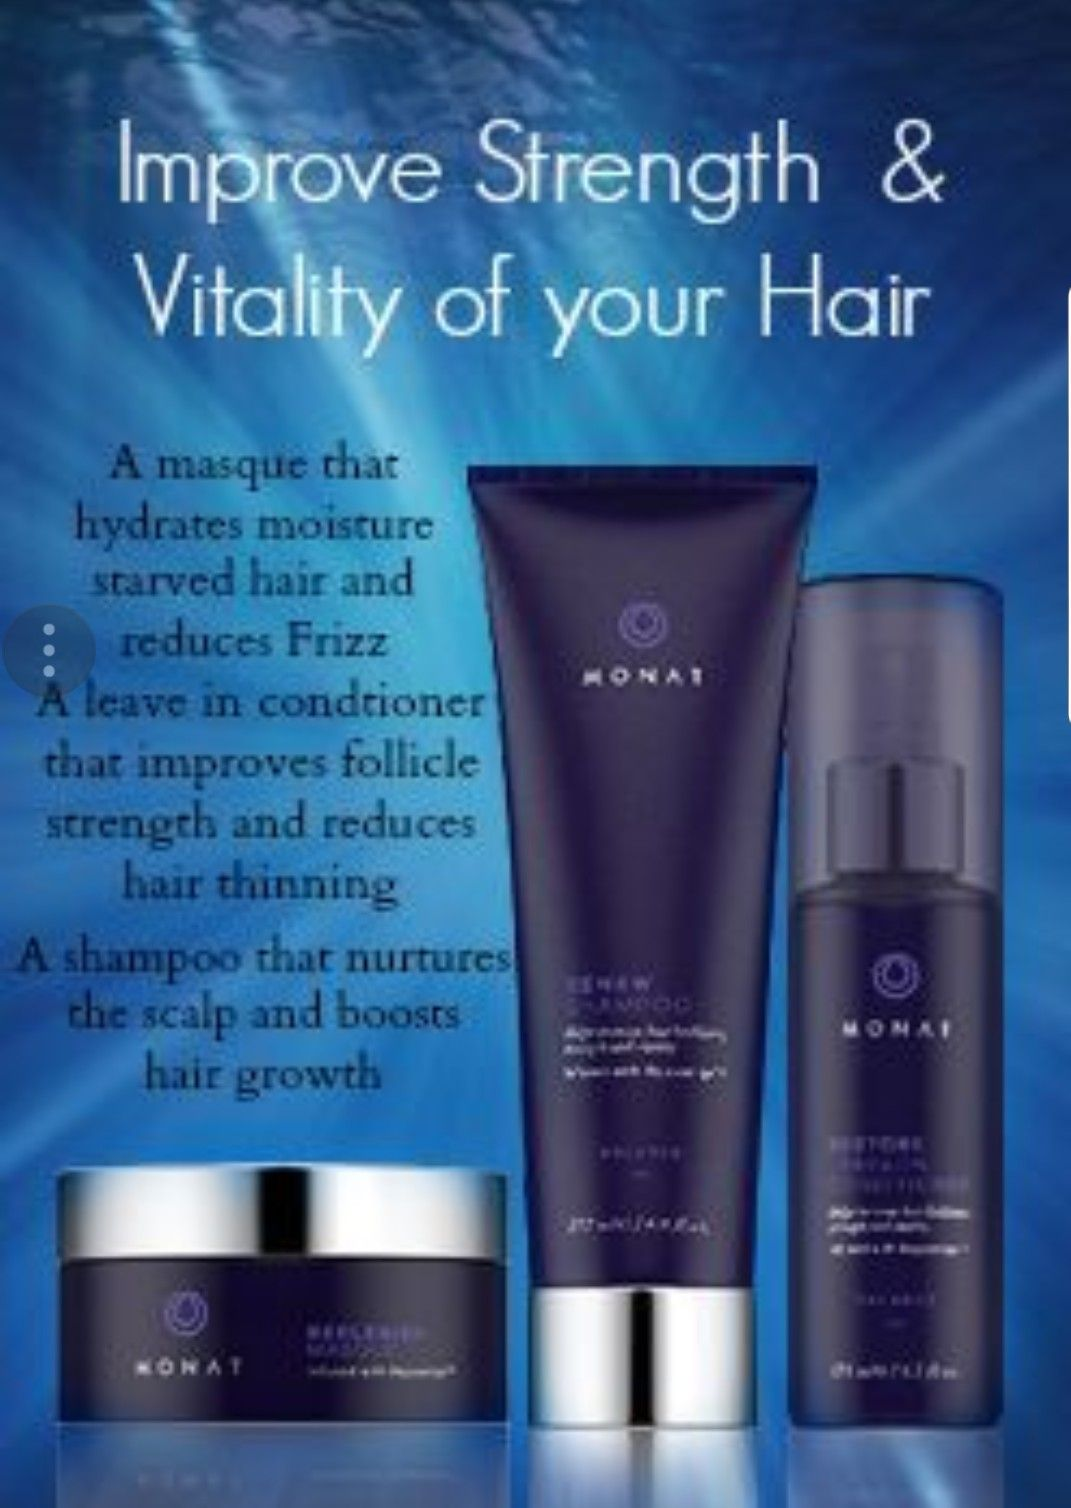 Pin by Sheena OrfPersons on Monat